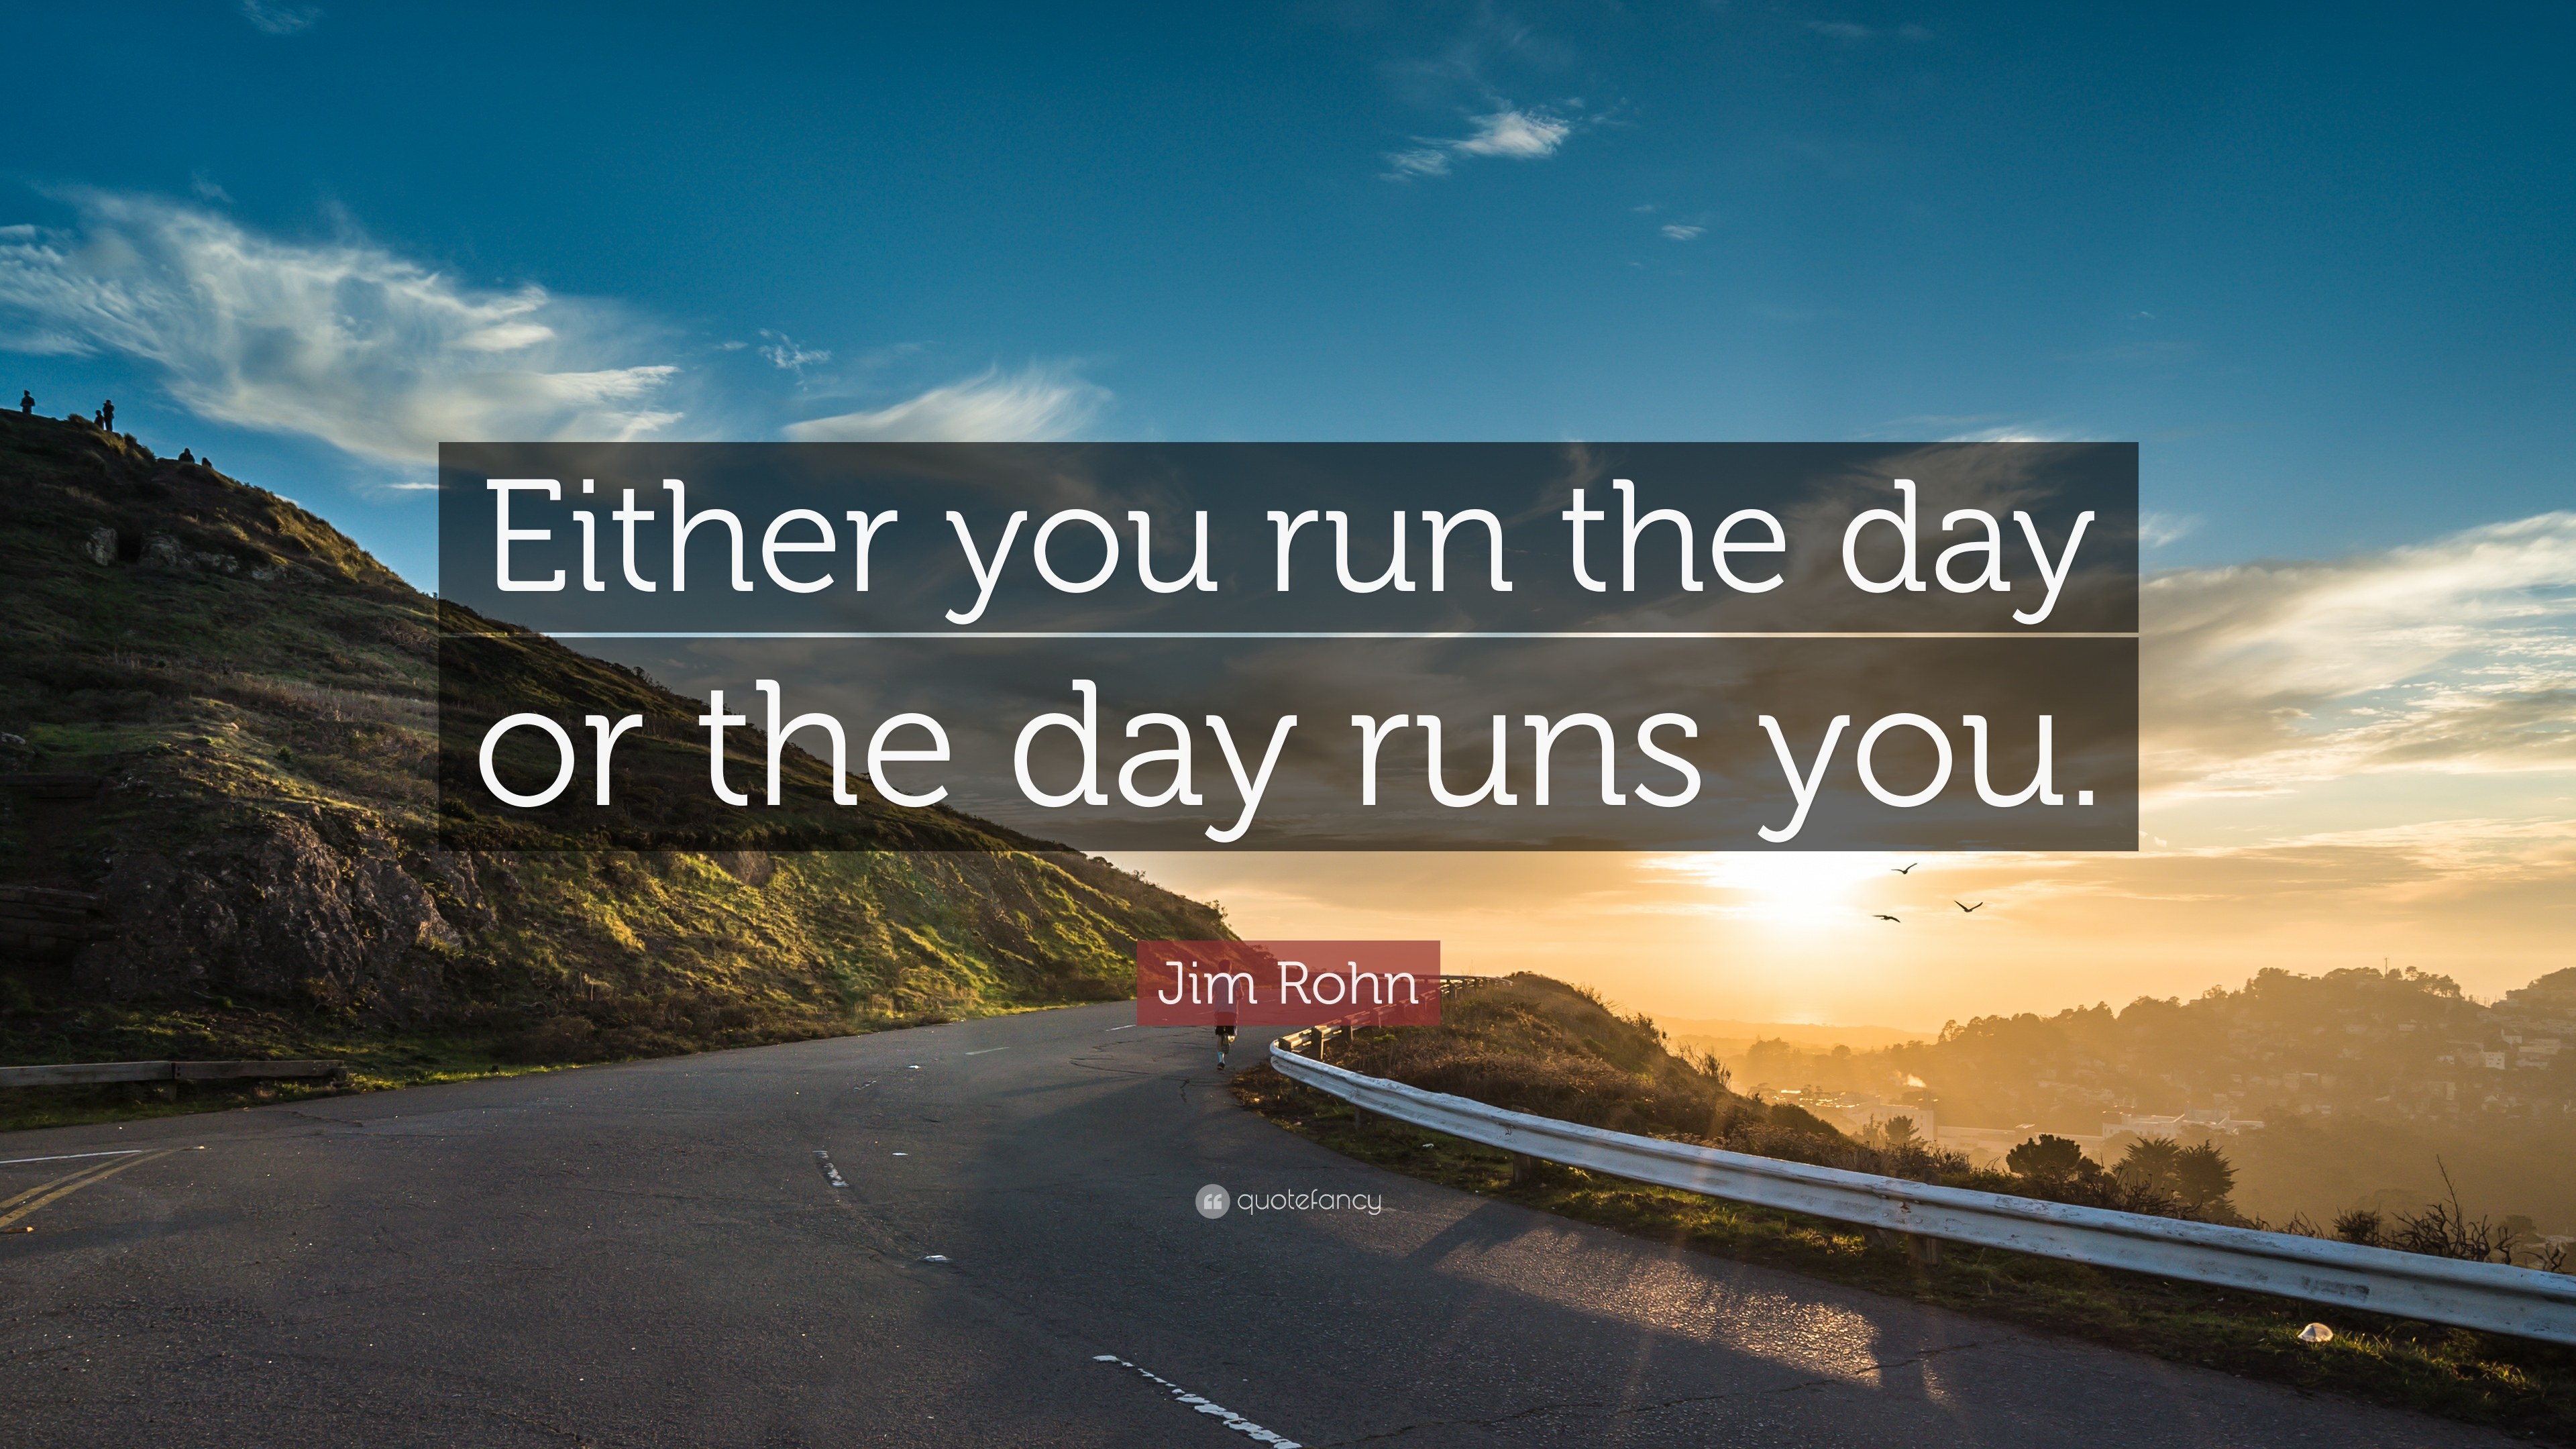 Positive Quotes Either You Run The Day Or Runs